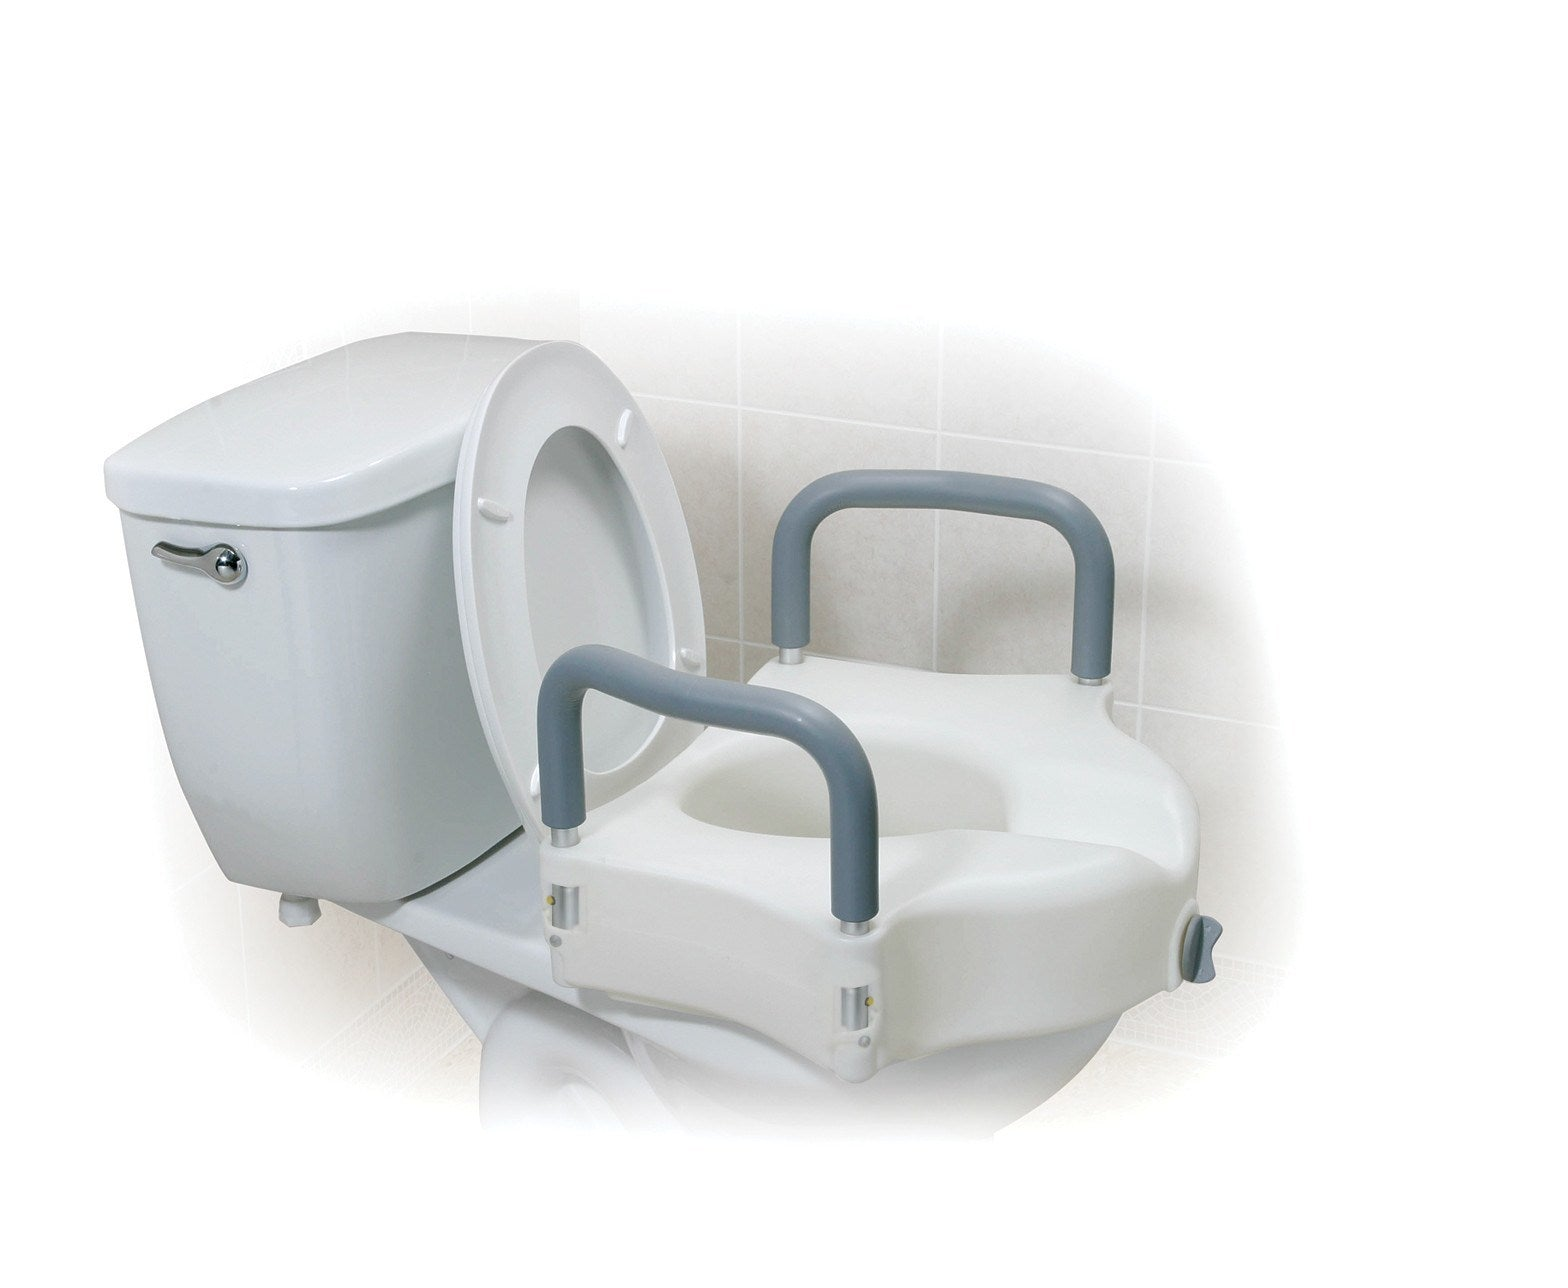 Drive Raised Toilet Seat With Arms.Drive Medical Raised Toilet Seat With Arms Medability Healthcare